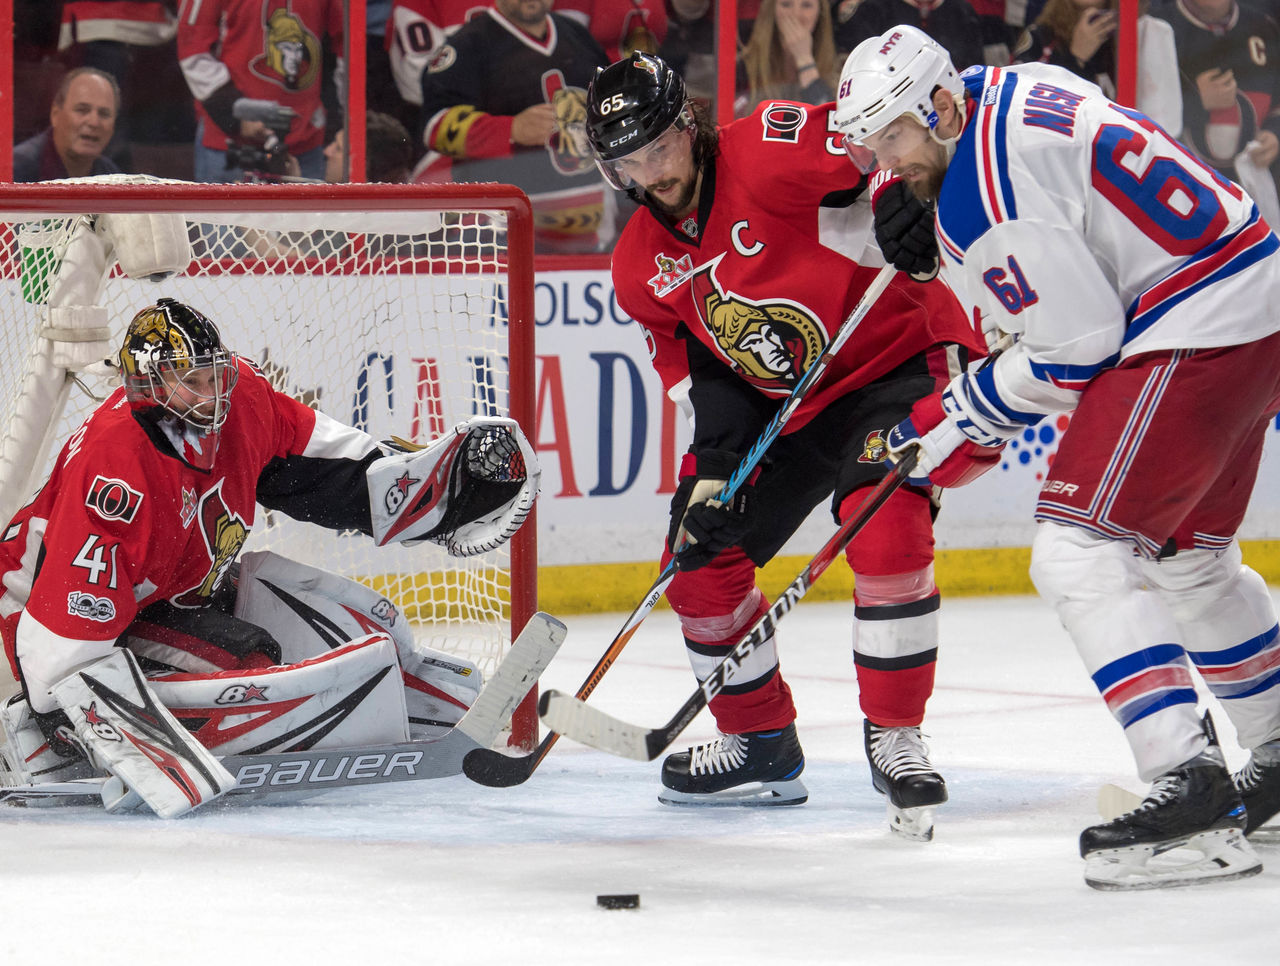 Cropped 2017 04 28t023009z 812406370 nocid rtrmadp 3 nhl stanley cup playoffs new york rangers at ottawa senators